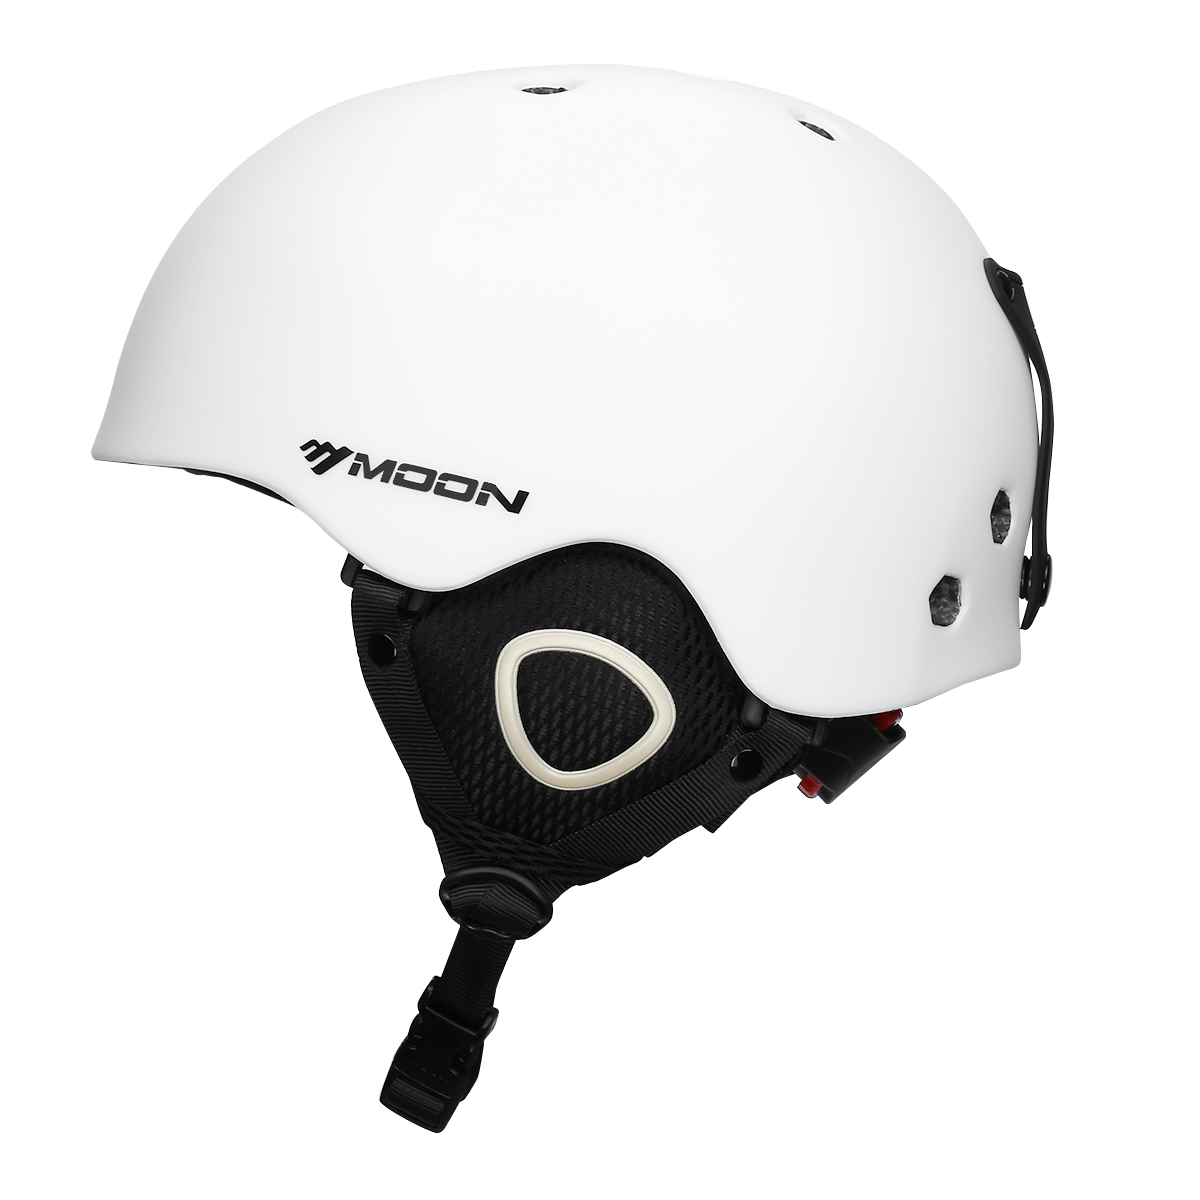 Moon Integrally-molded Skiing Helmets 1#S by